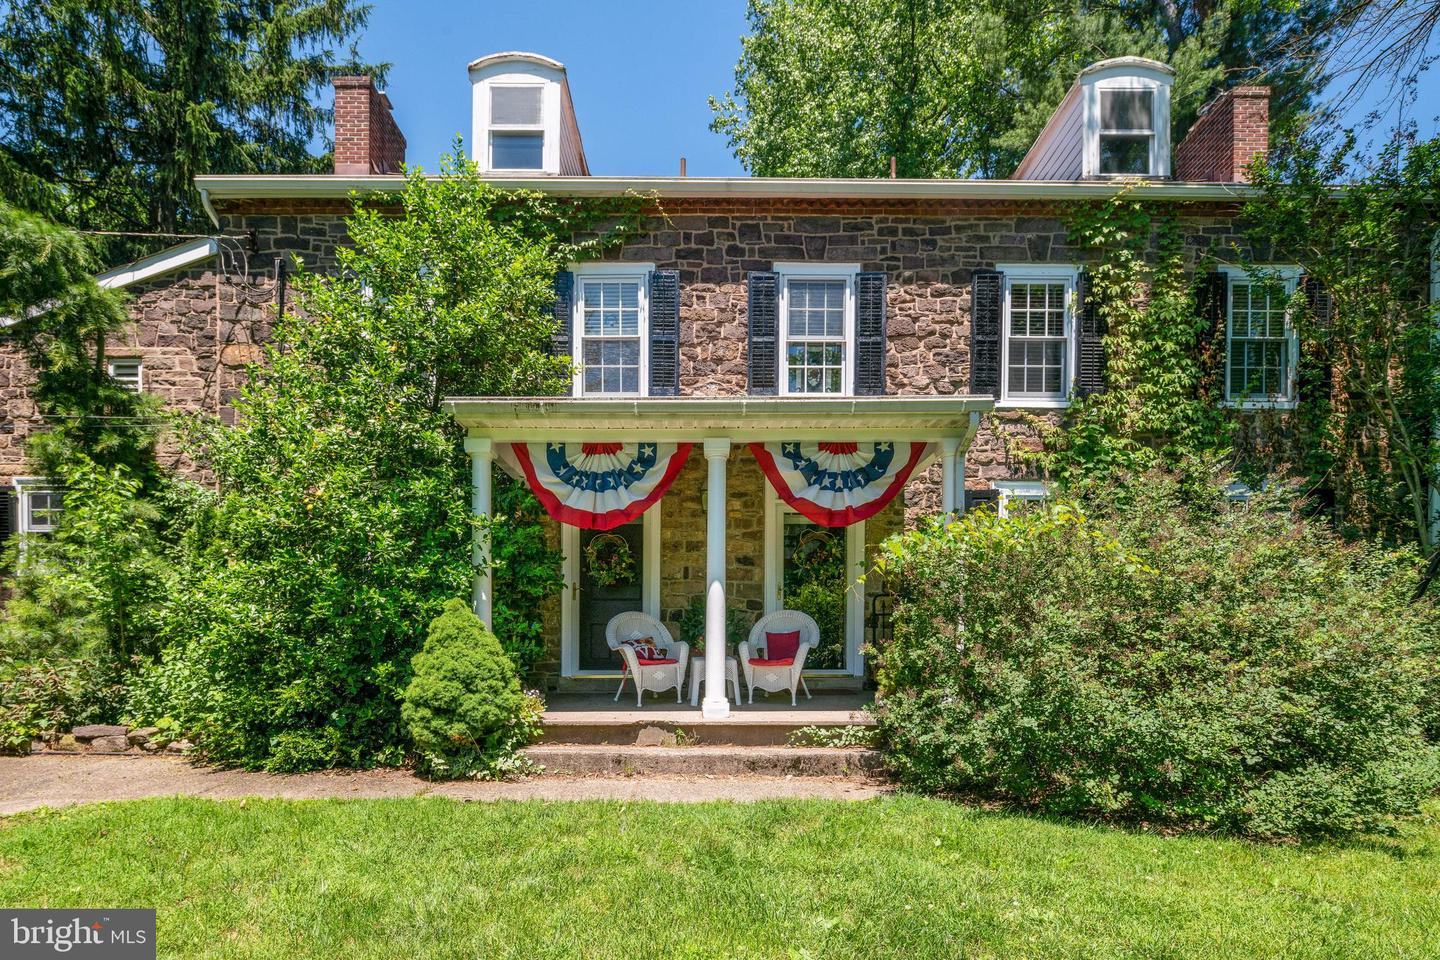 149 MIDDLE HOLLAND RD, HOLLAND, PA